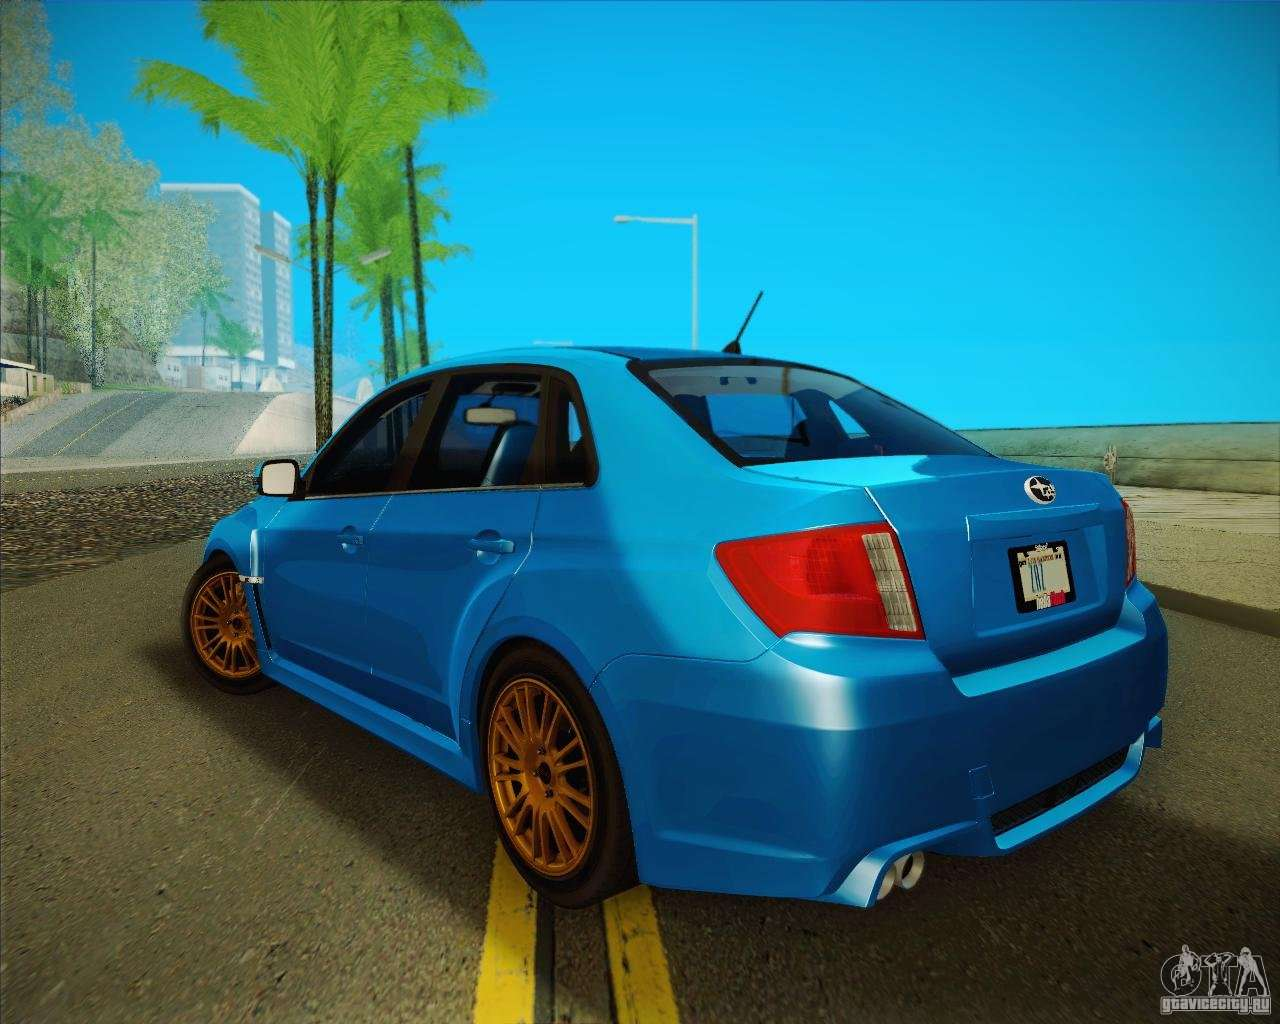 Subaru Impreza Wrx Sti V together with Maxresdefault besides Hqdefault in addition N further Gta Sa. on subaru impreza wrx sti